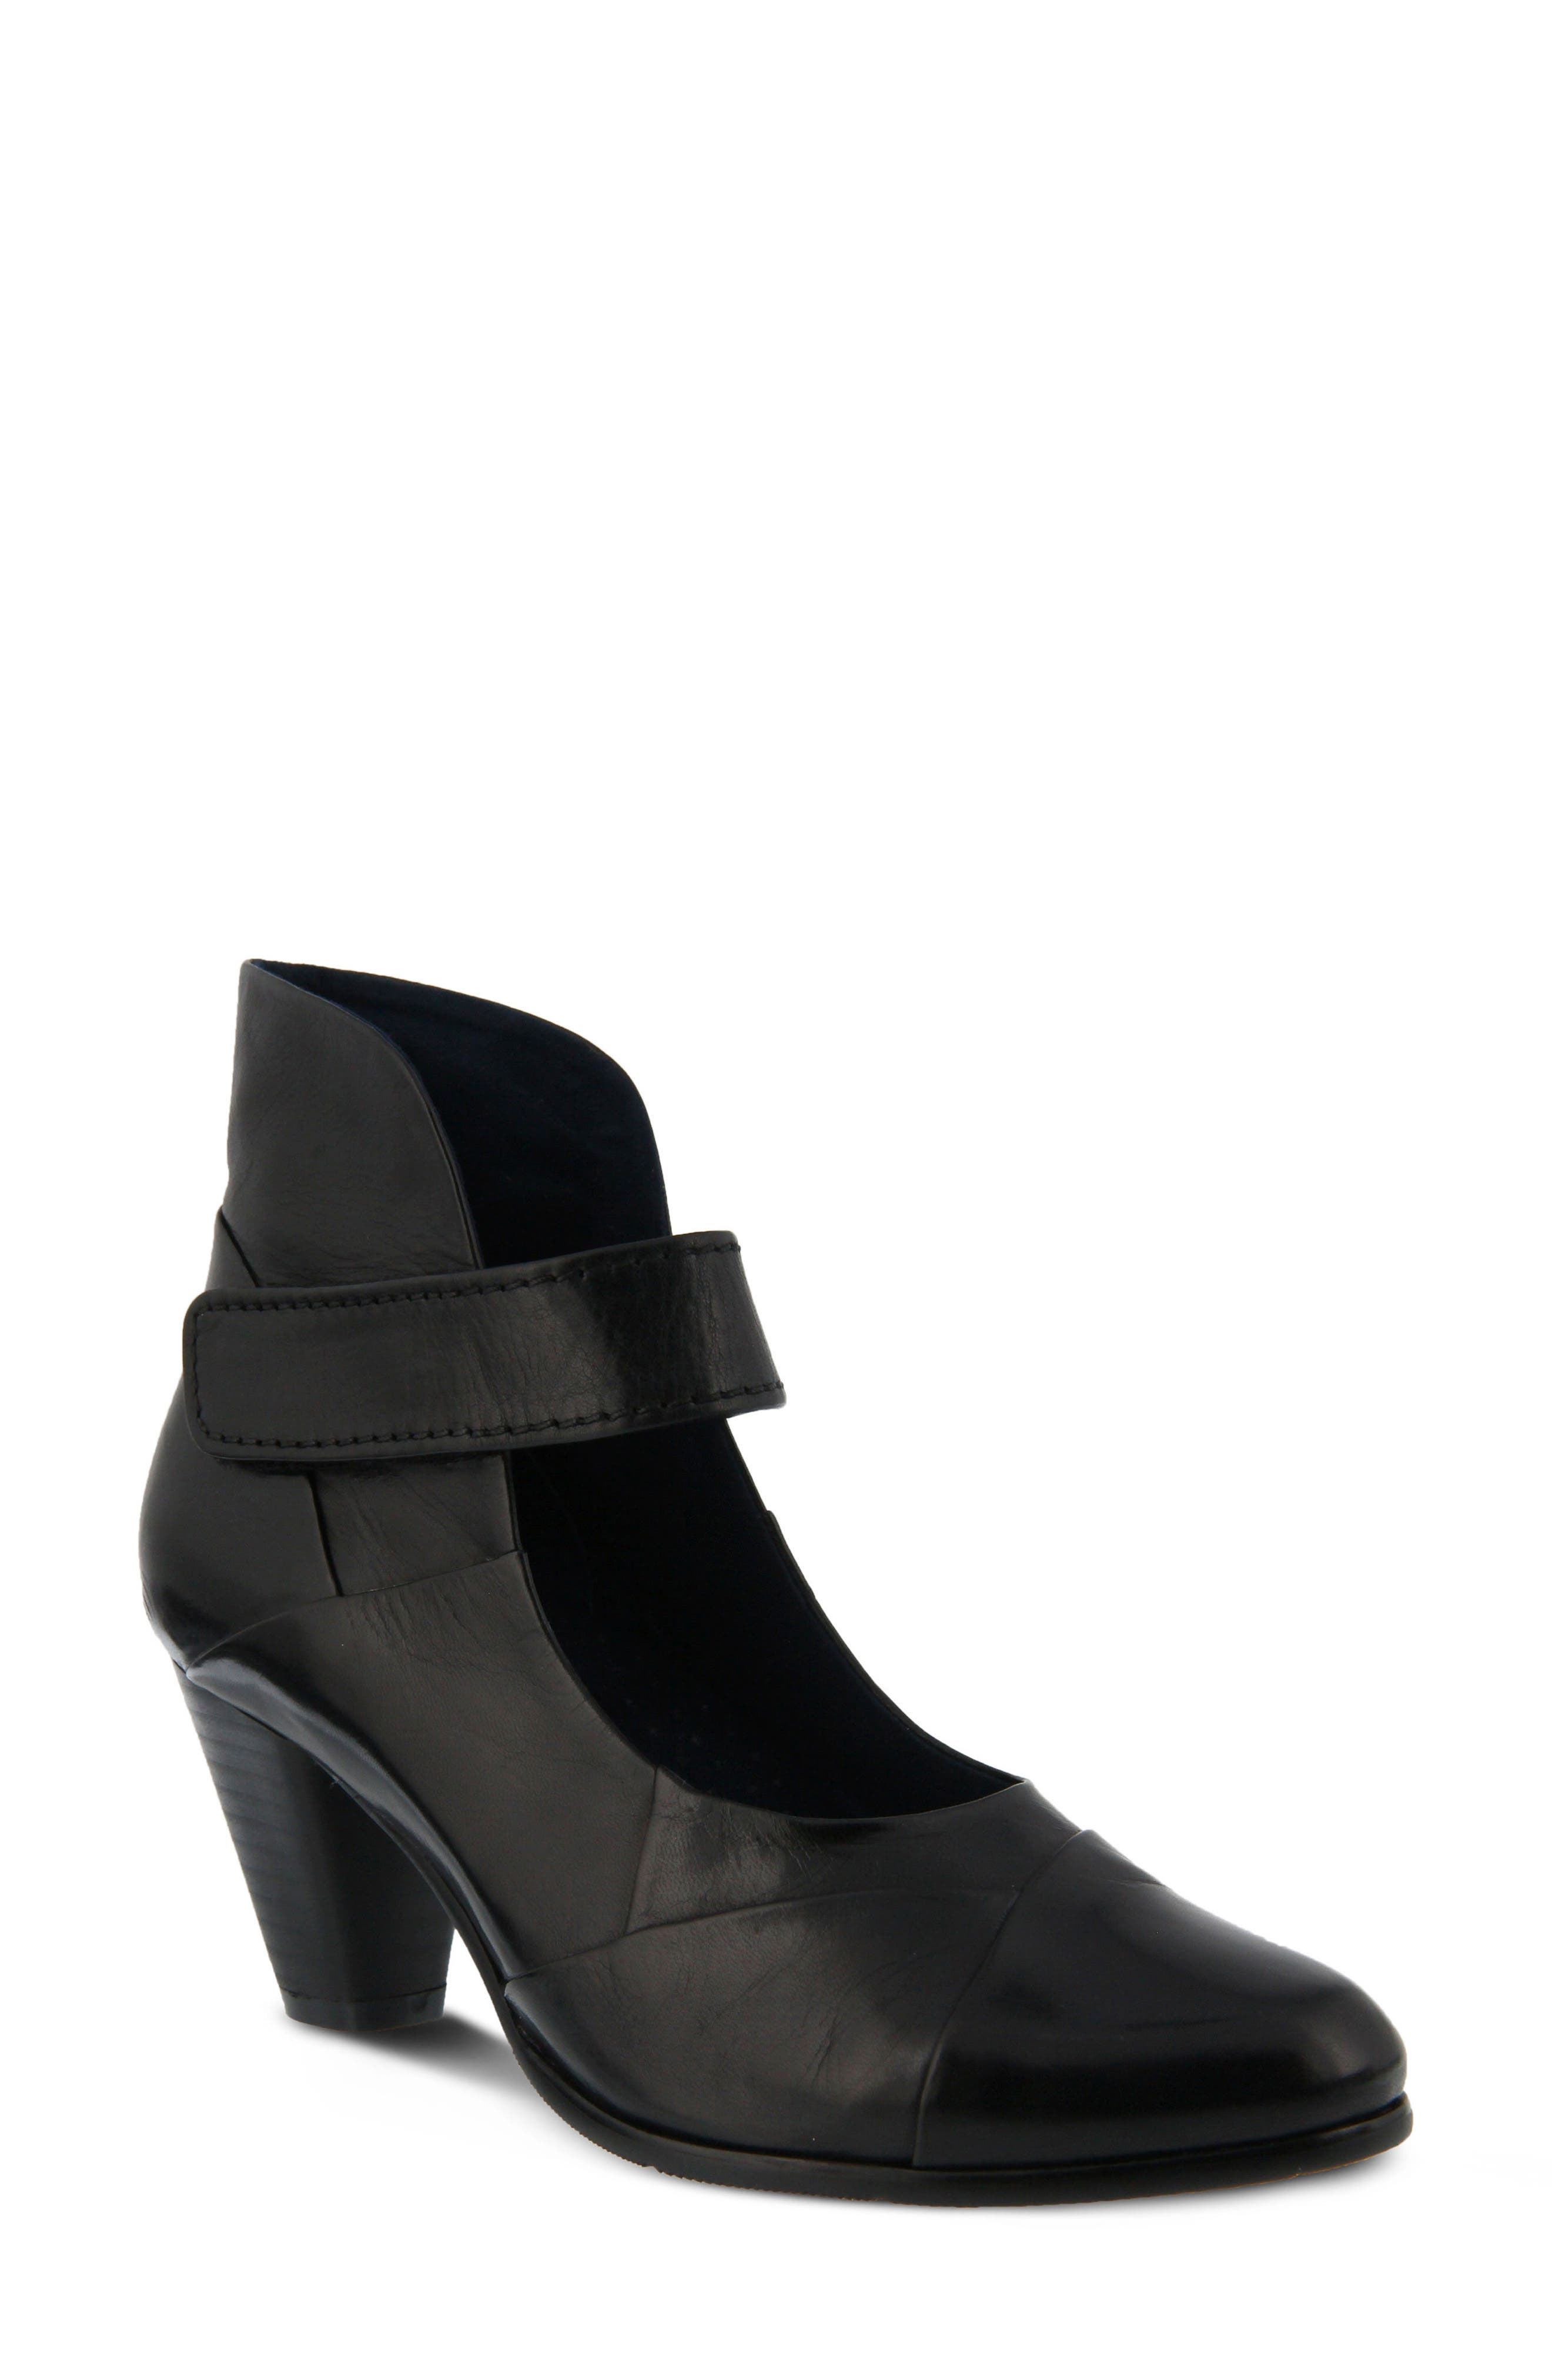 Alternate Image 1 Selected - Spring Step Chapeco Patchwork Ankle Strap Pump (Women)